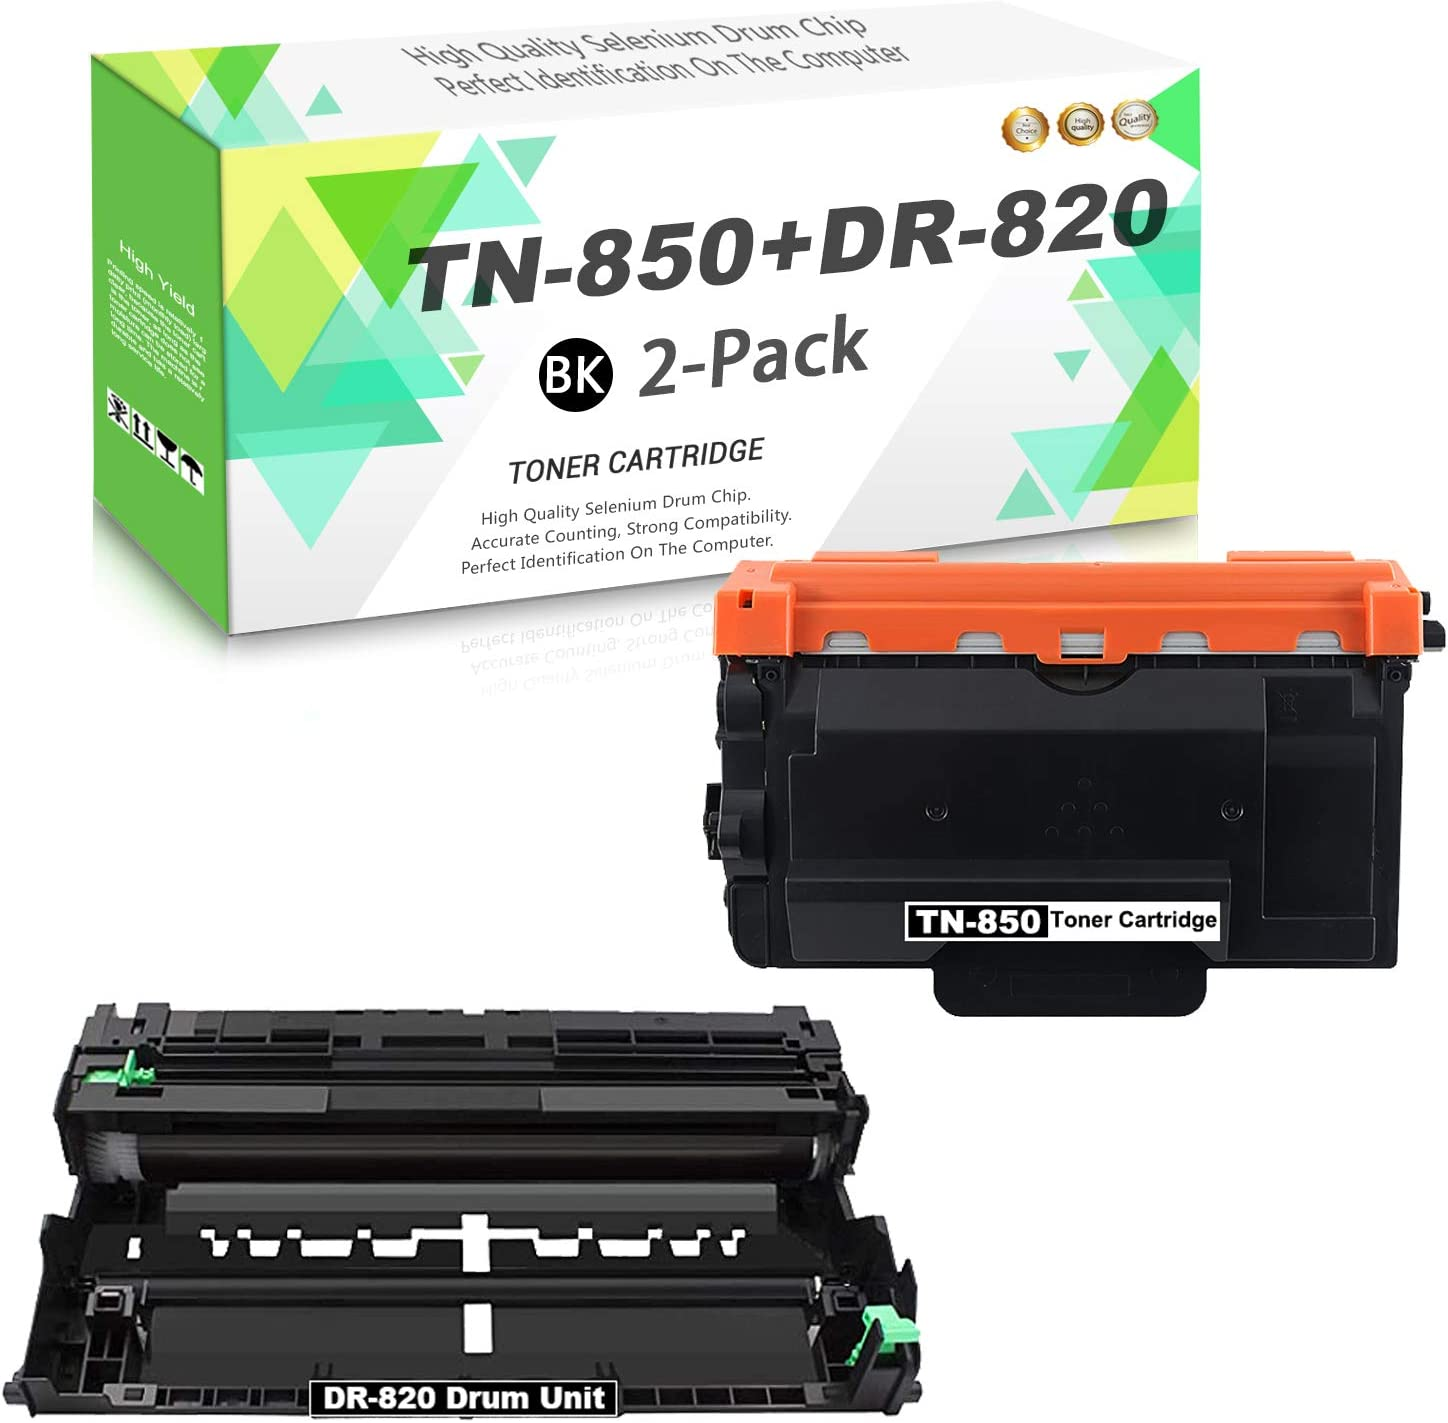 TN-850 Toner Cartridge DR-820 Drum 2-Pack Outstanding 1 T High Pack Yield Genuine Free Shipping